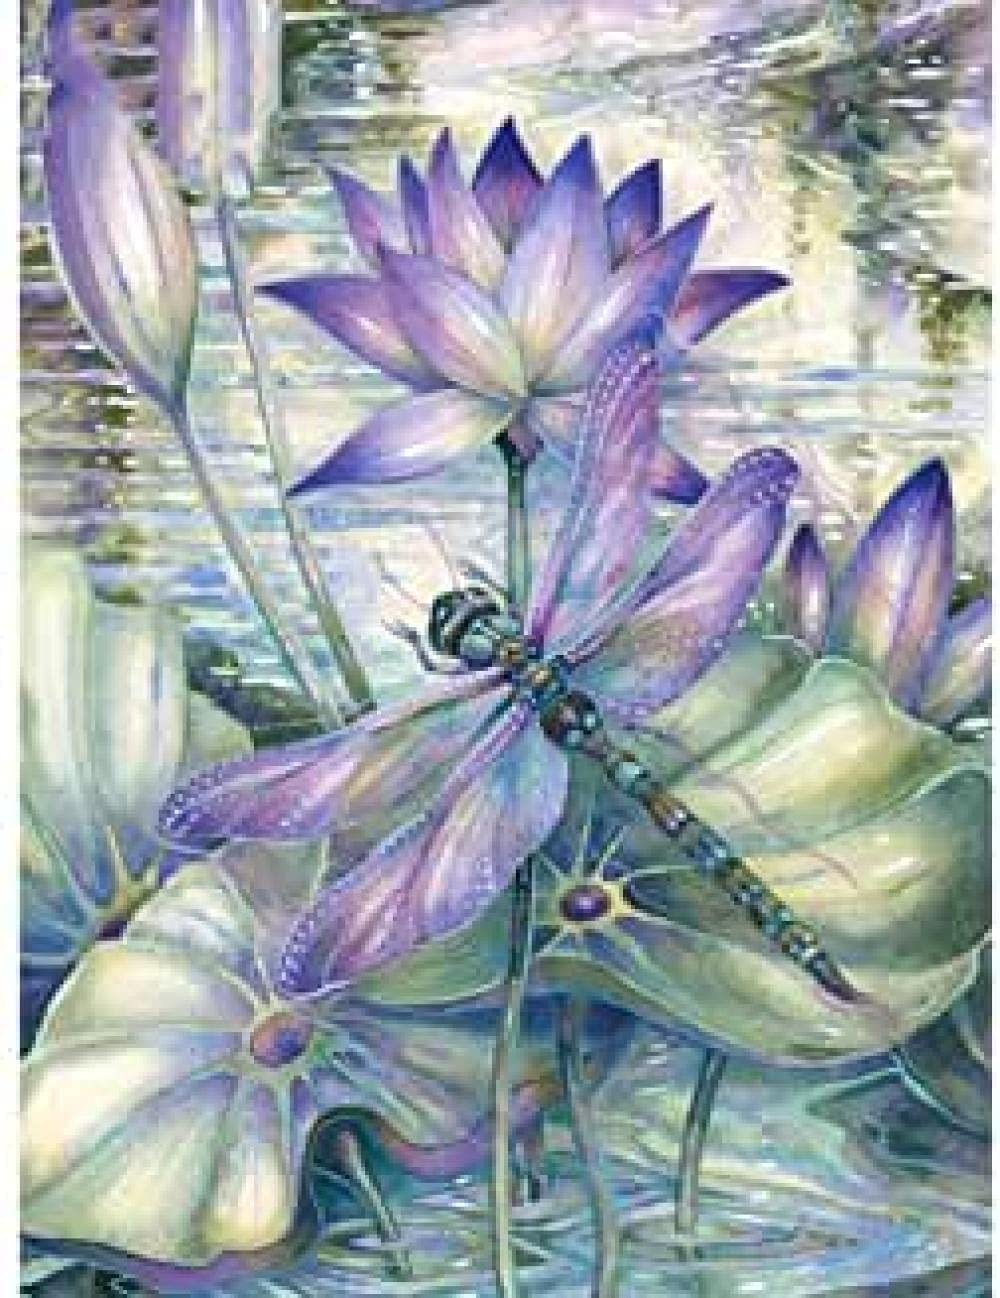 PaintbyNumbersforAdultsbyDIY Blue Lotus Adult by Num Cheap SALE Start Easy-to-use Paint